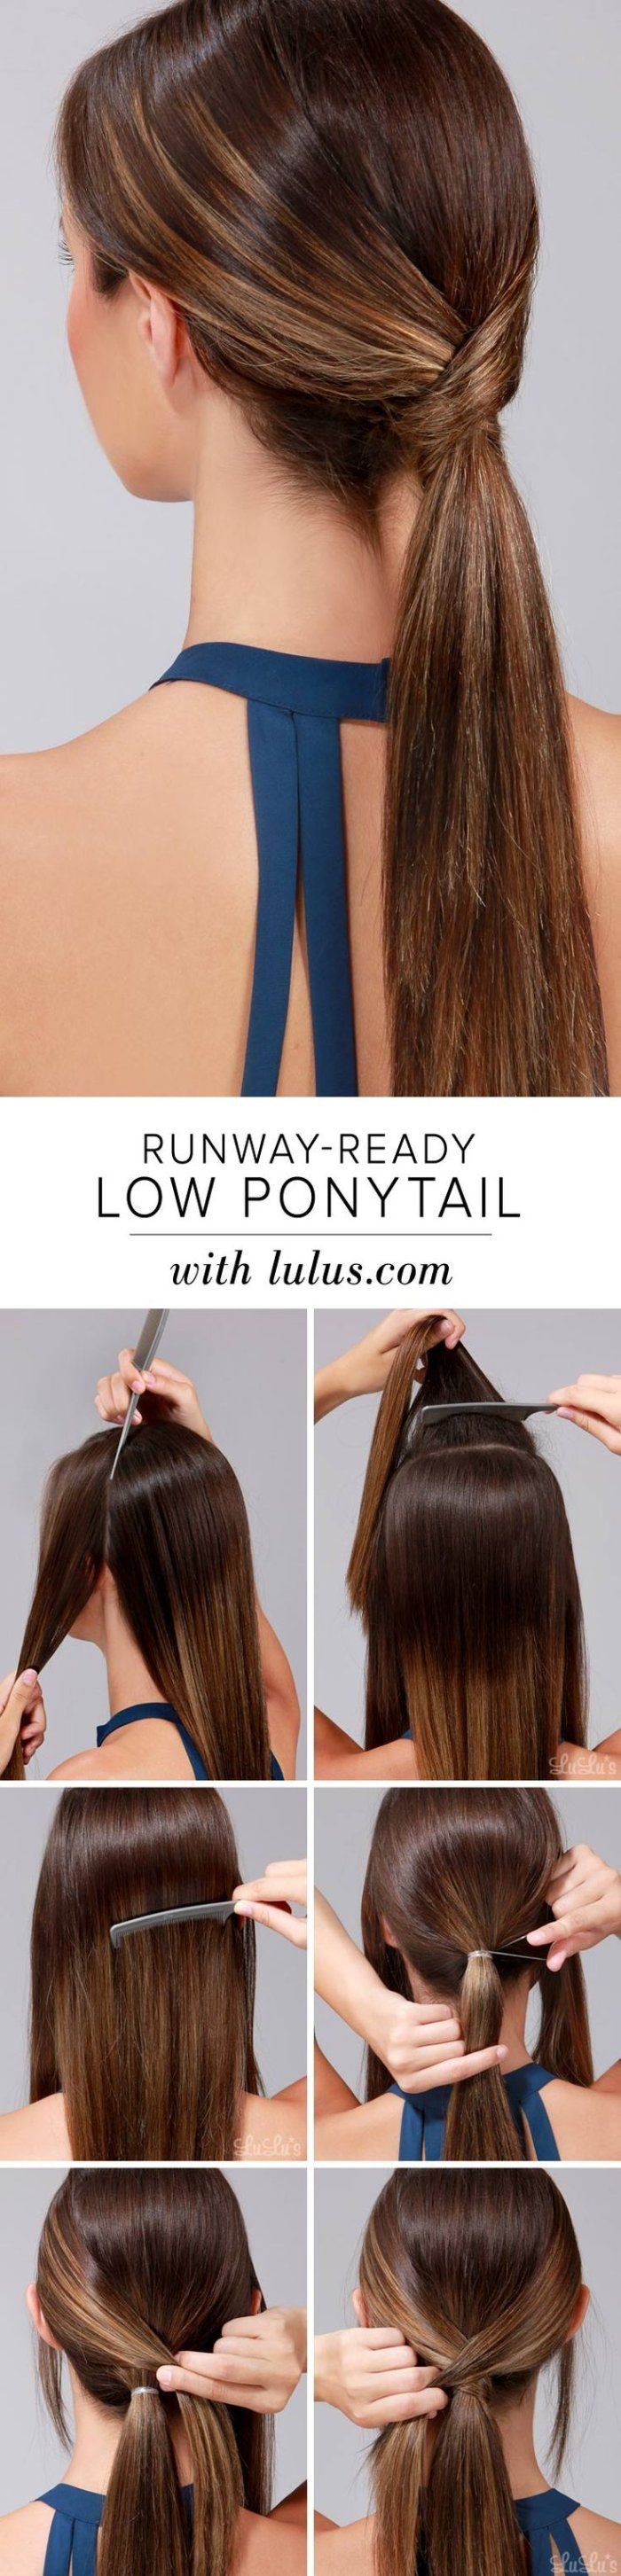 Pin by ankie on haar Pinterest How to style Hair and Style